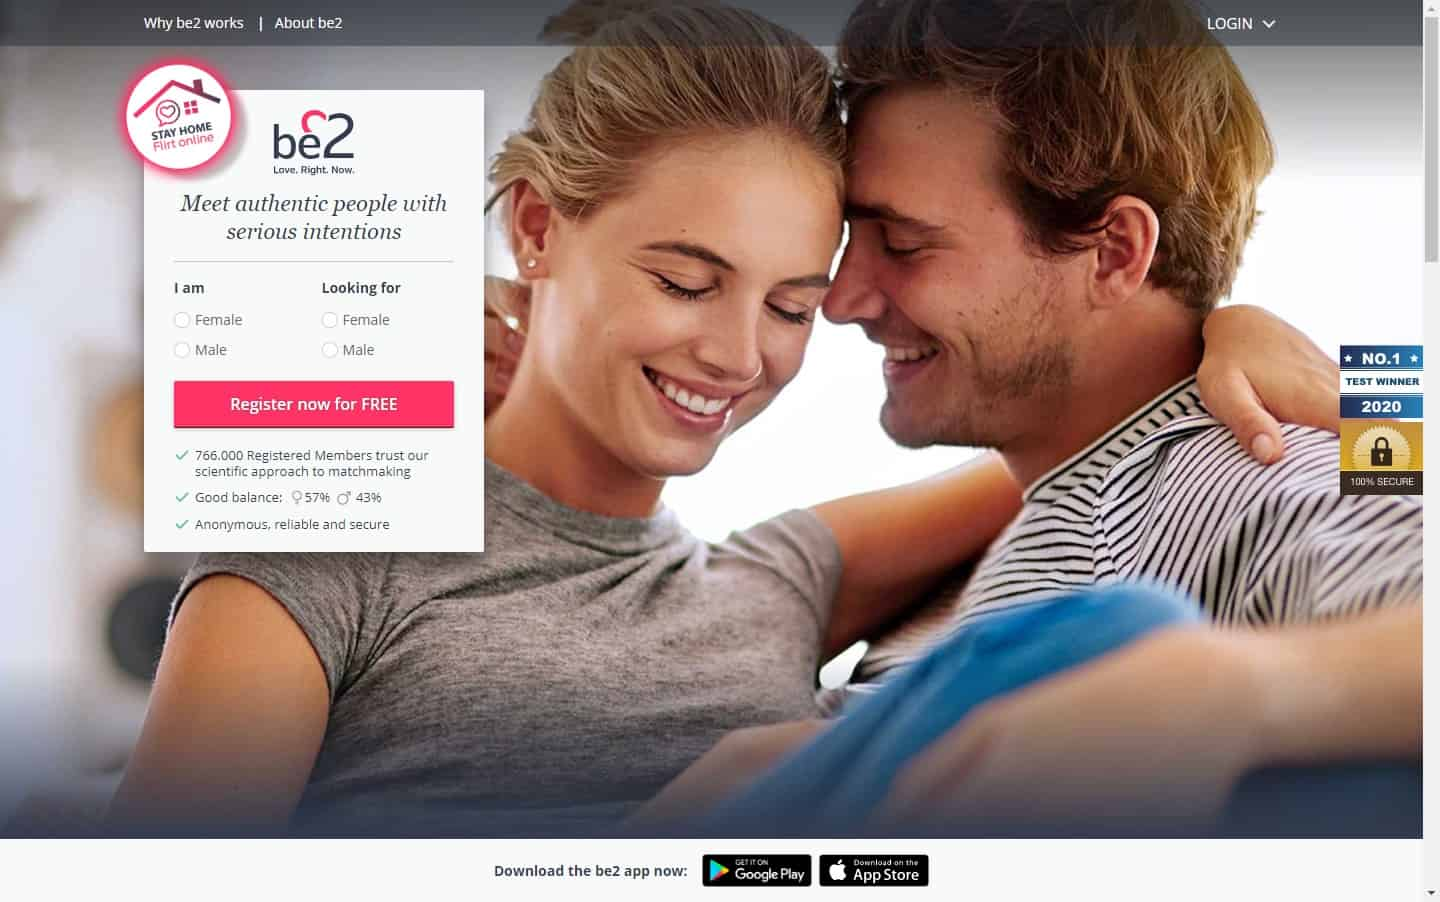 Test winner: Be2 - Casual Dating